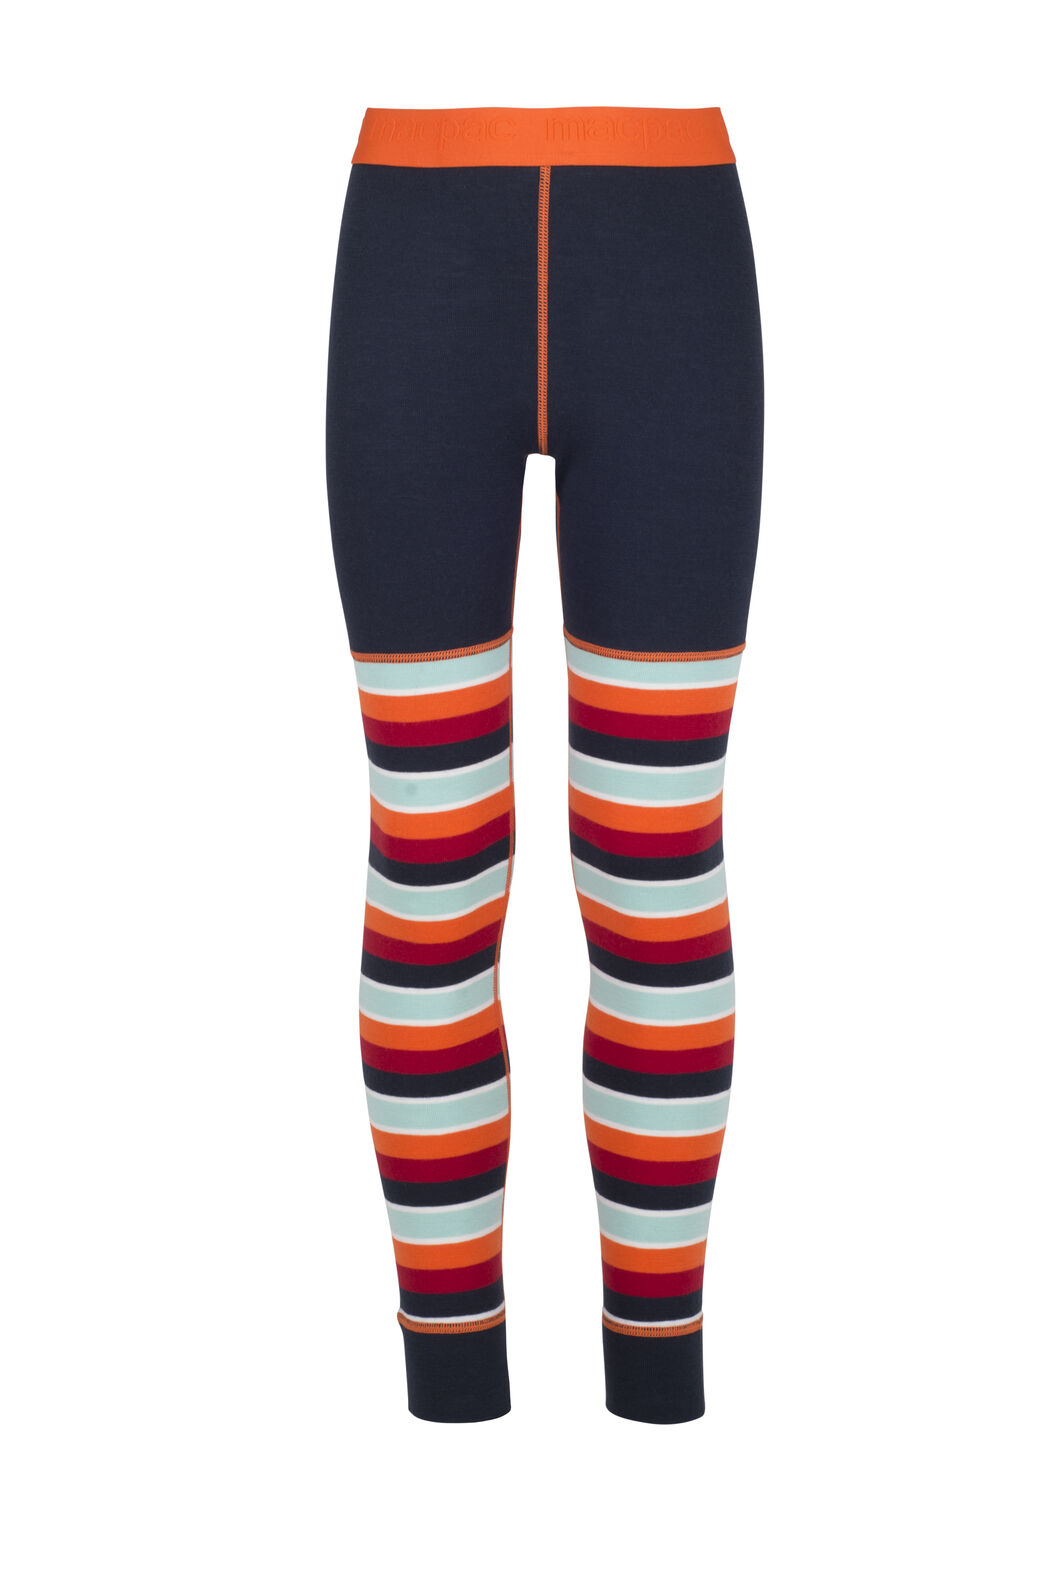 Macpac 220 Merino Long Johns - Kids', Orange Stripe, hi-res